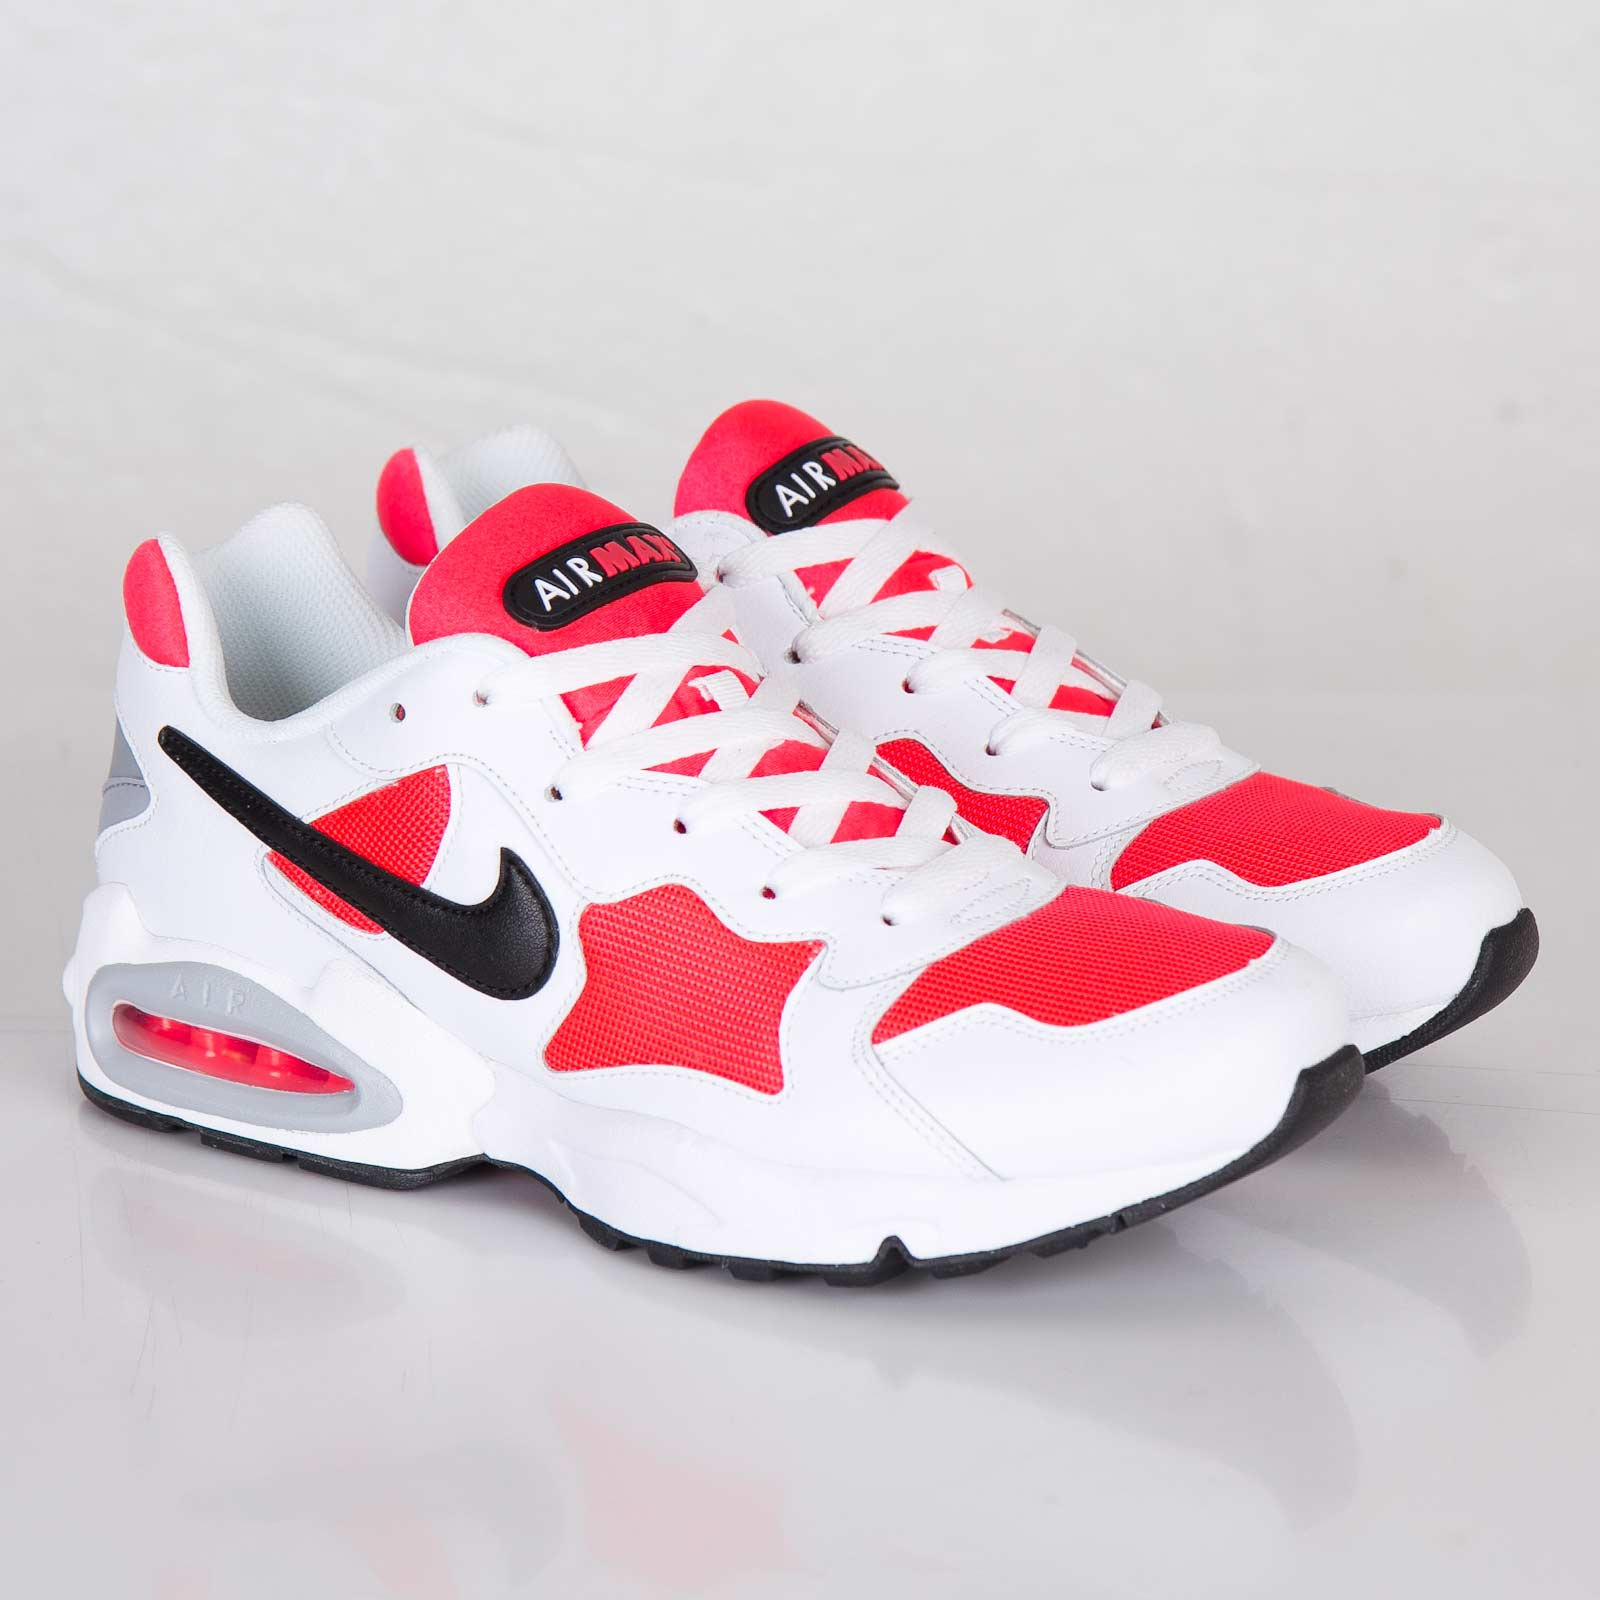 d9a7da28430e Nike Air Max Triax ´94 - 615767-600 - Sneakersnstuff